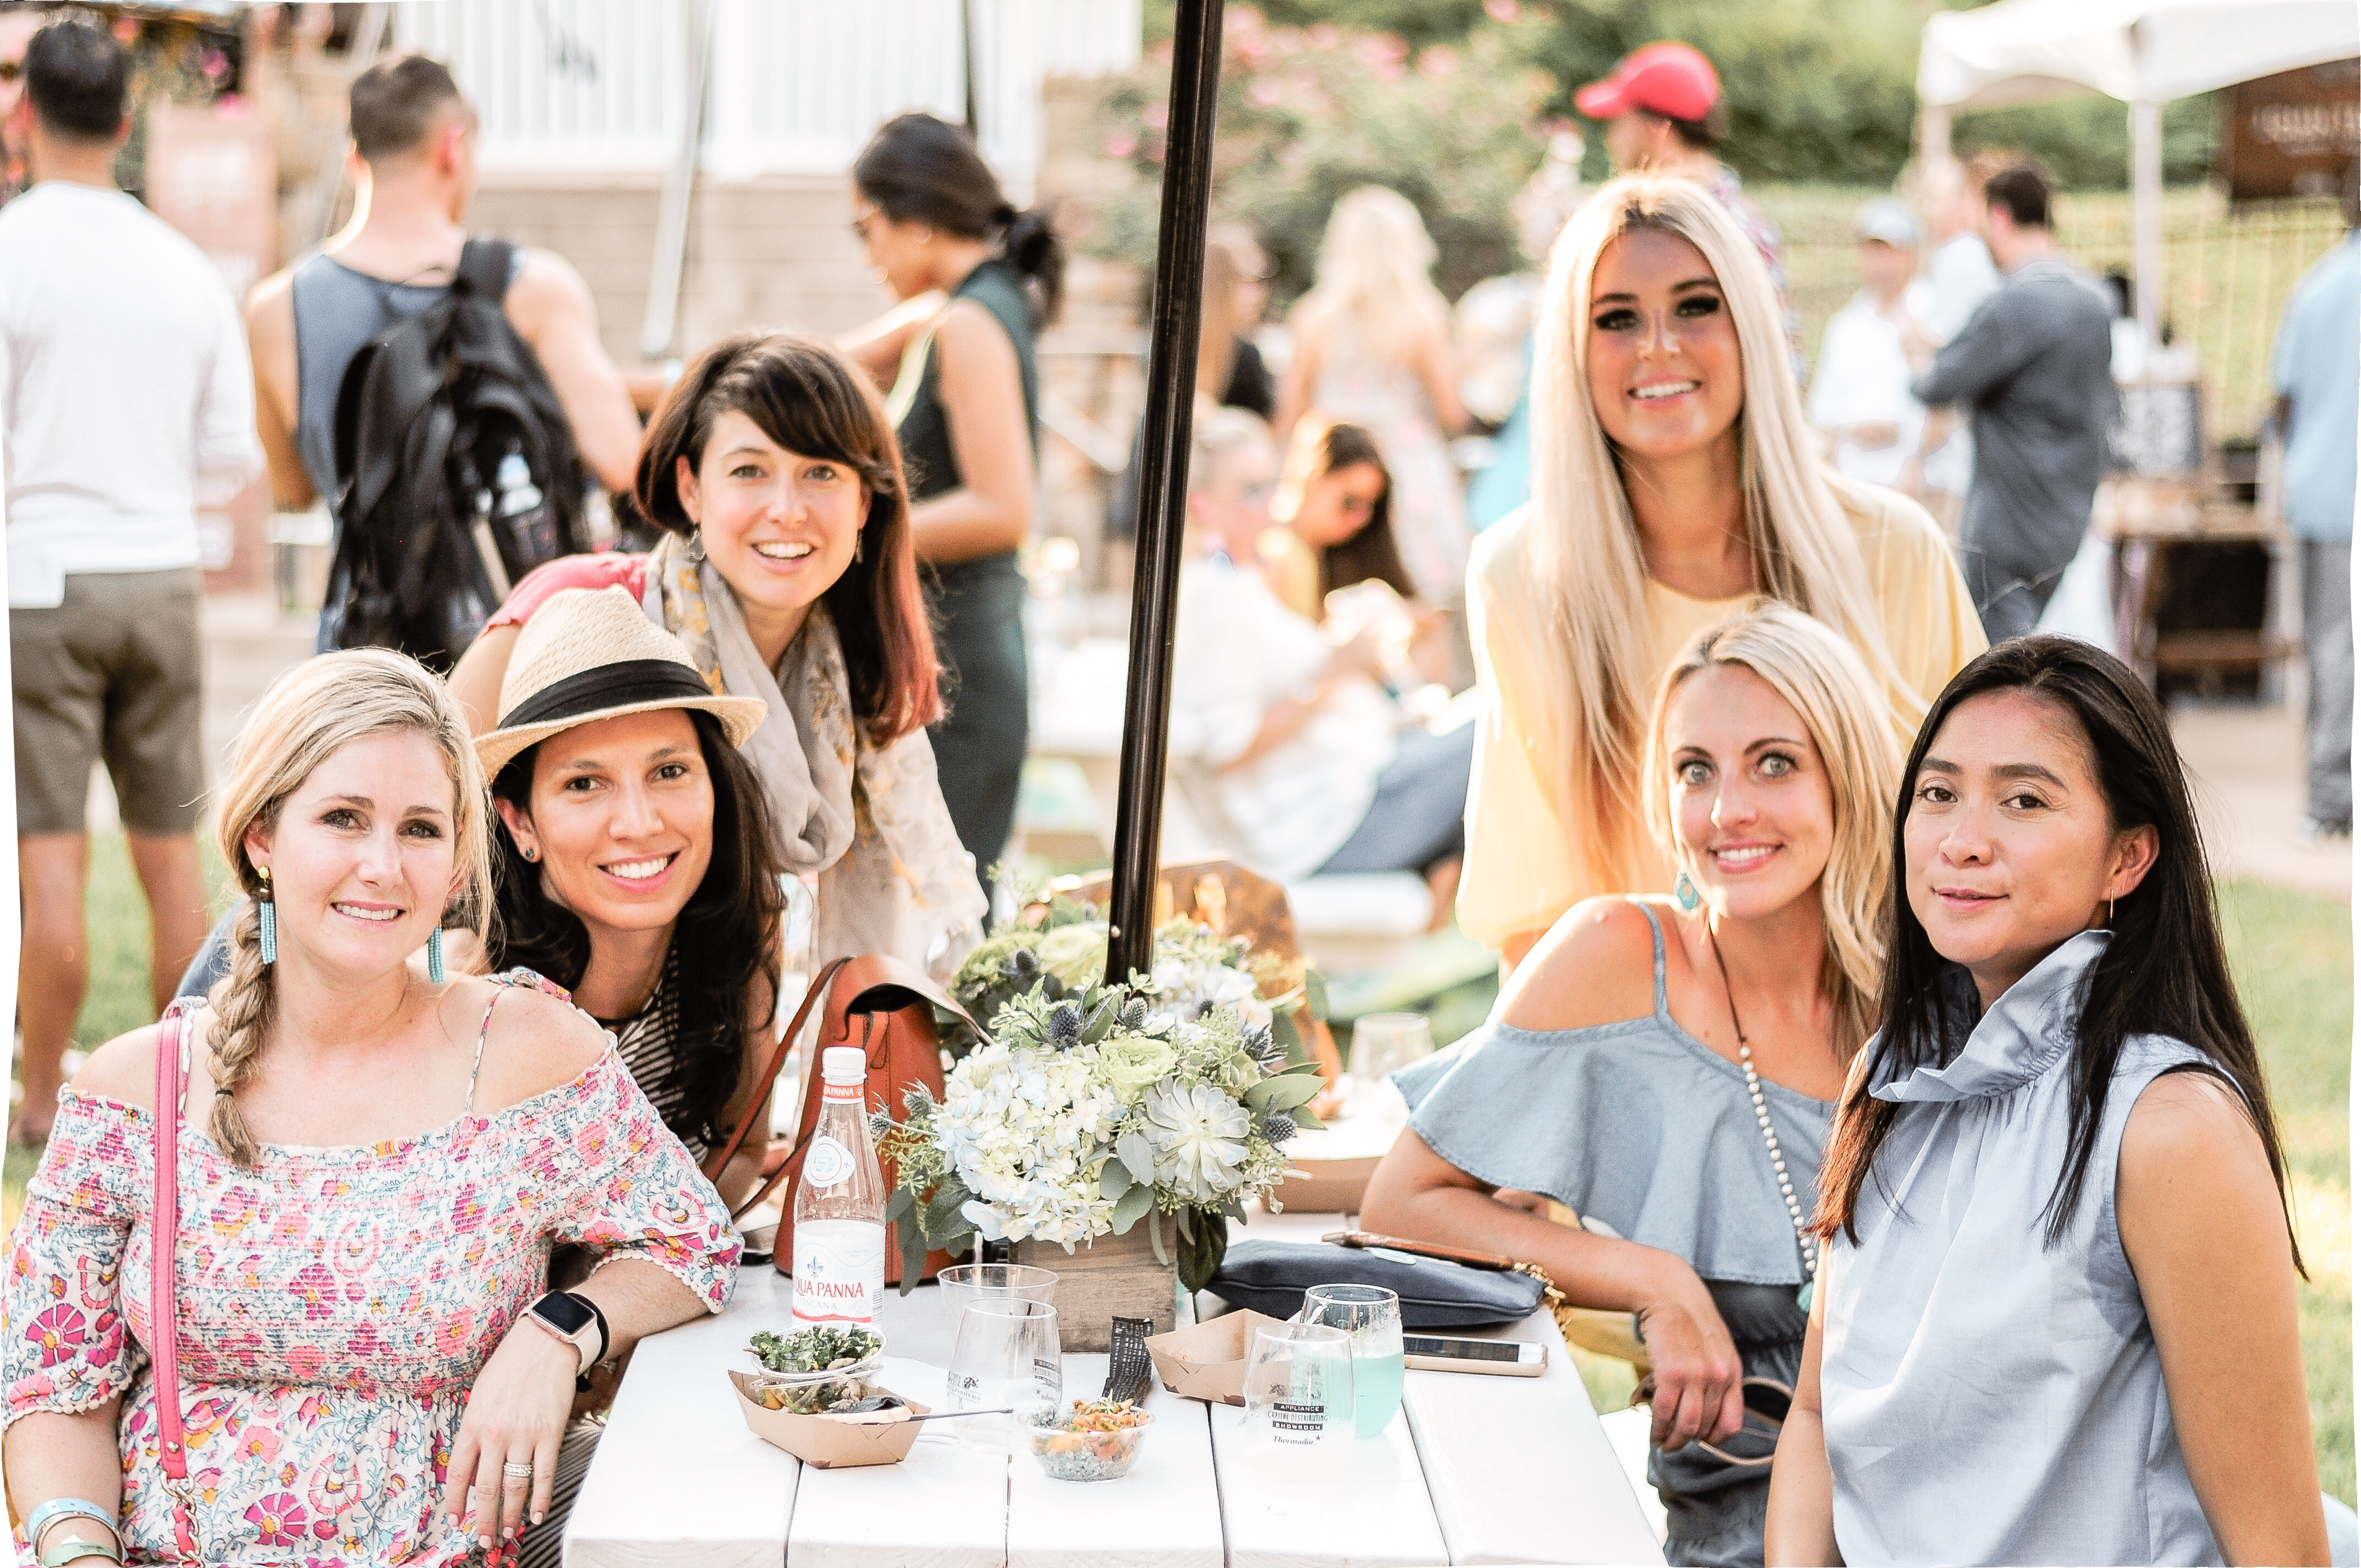 Stephany Bowman, Editor and creator of Stephany's Choice, with Friends Robin Hufsey, Jessica Lantos, Rachel Carter, Courtney Watkins, Denise Brown for the Chefs for Farmers food festival in Dallas, Texas